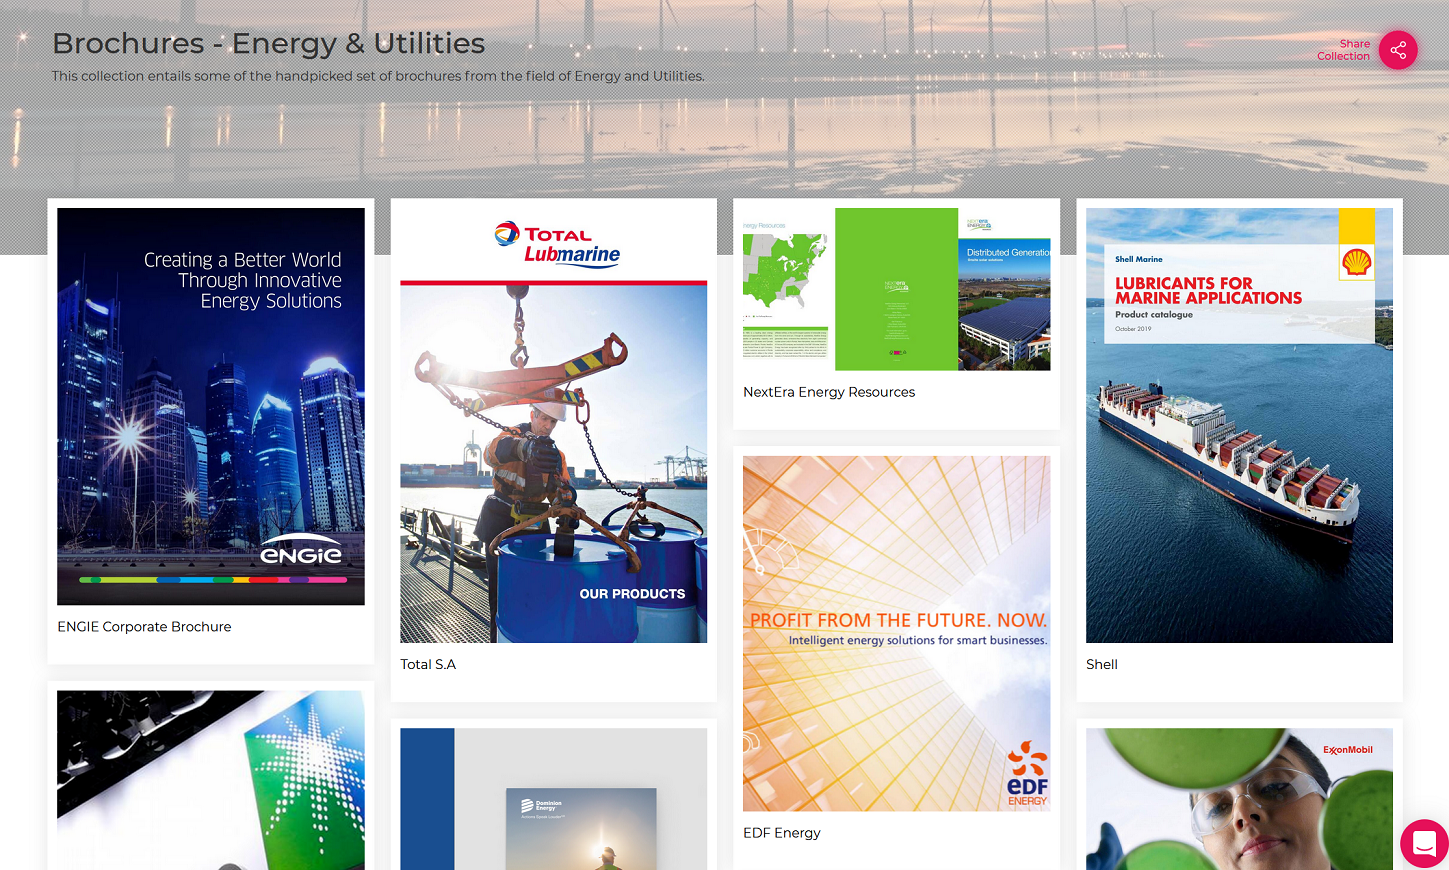 Brochure - Energy & Utilities - Cover Image